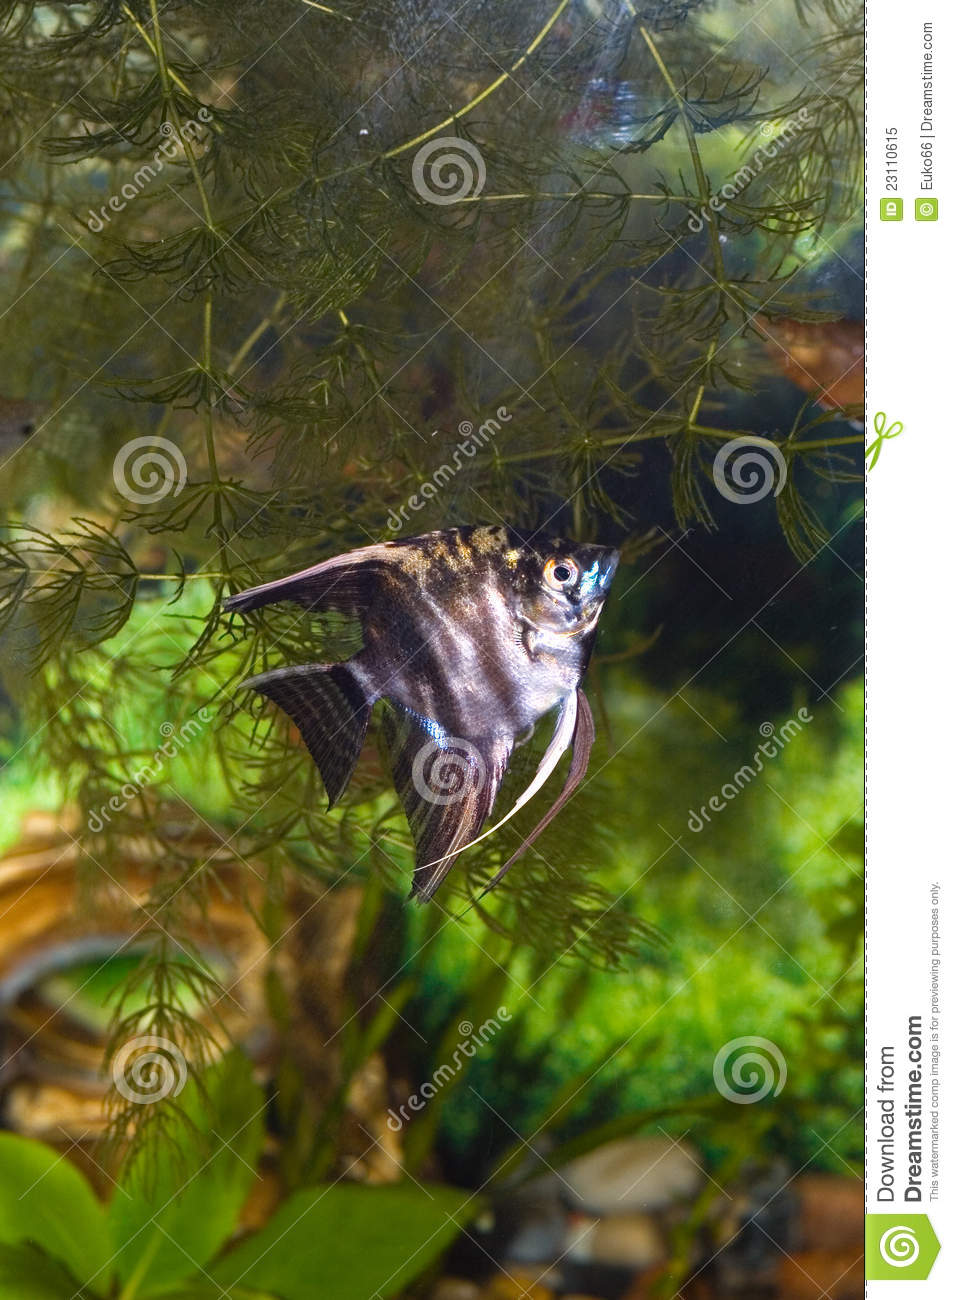 Aquarium With Fish. Green Theme Royalty Free Stock Photo - Image ...